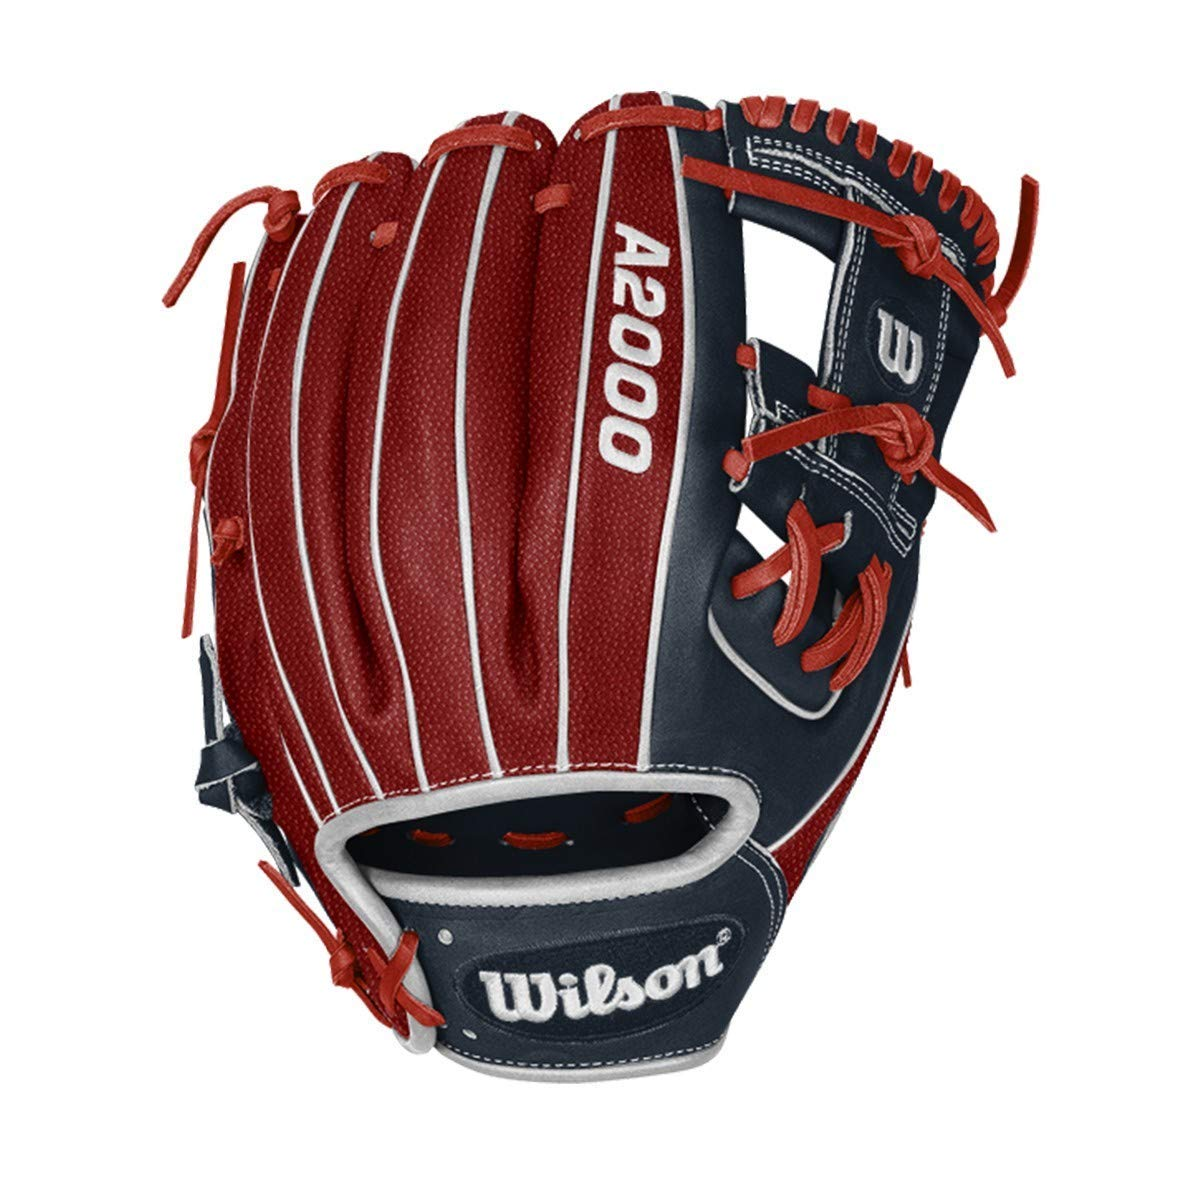 wilson-a2000-baseball-glove-11-5-right-hand-throw-1786-july WTA20RB19LELUL-RightHandThrow Wilson 887768724719 Honor the Stars and Stripes and celebrate the Fourth of July